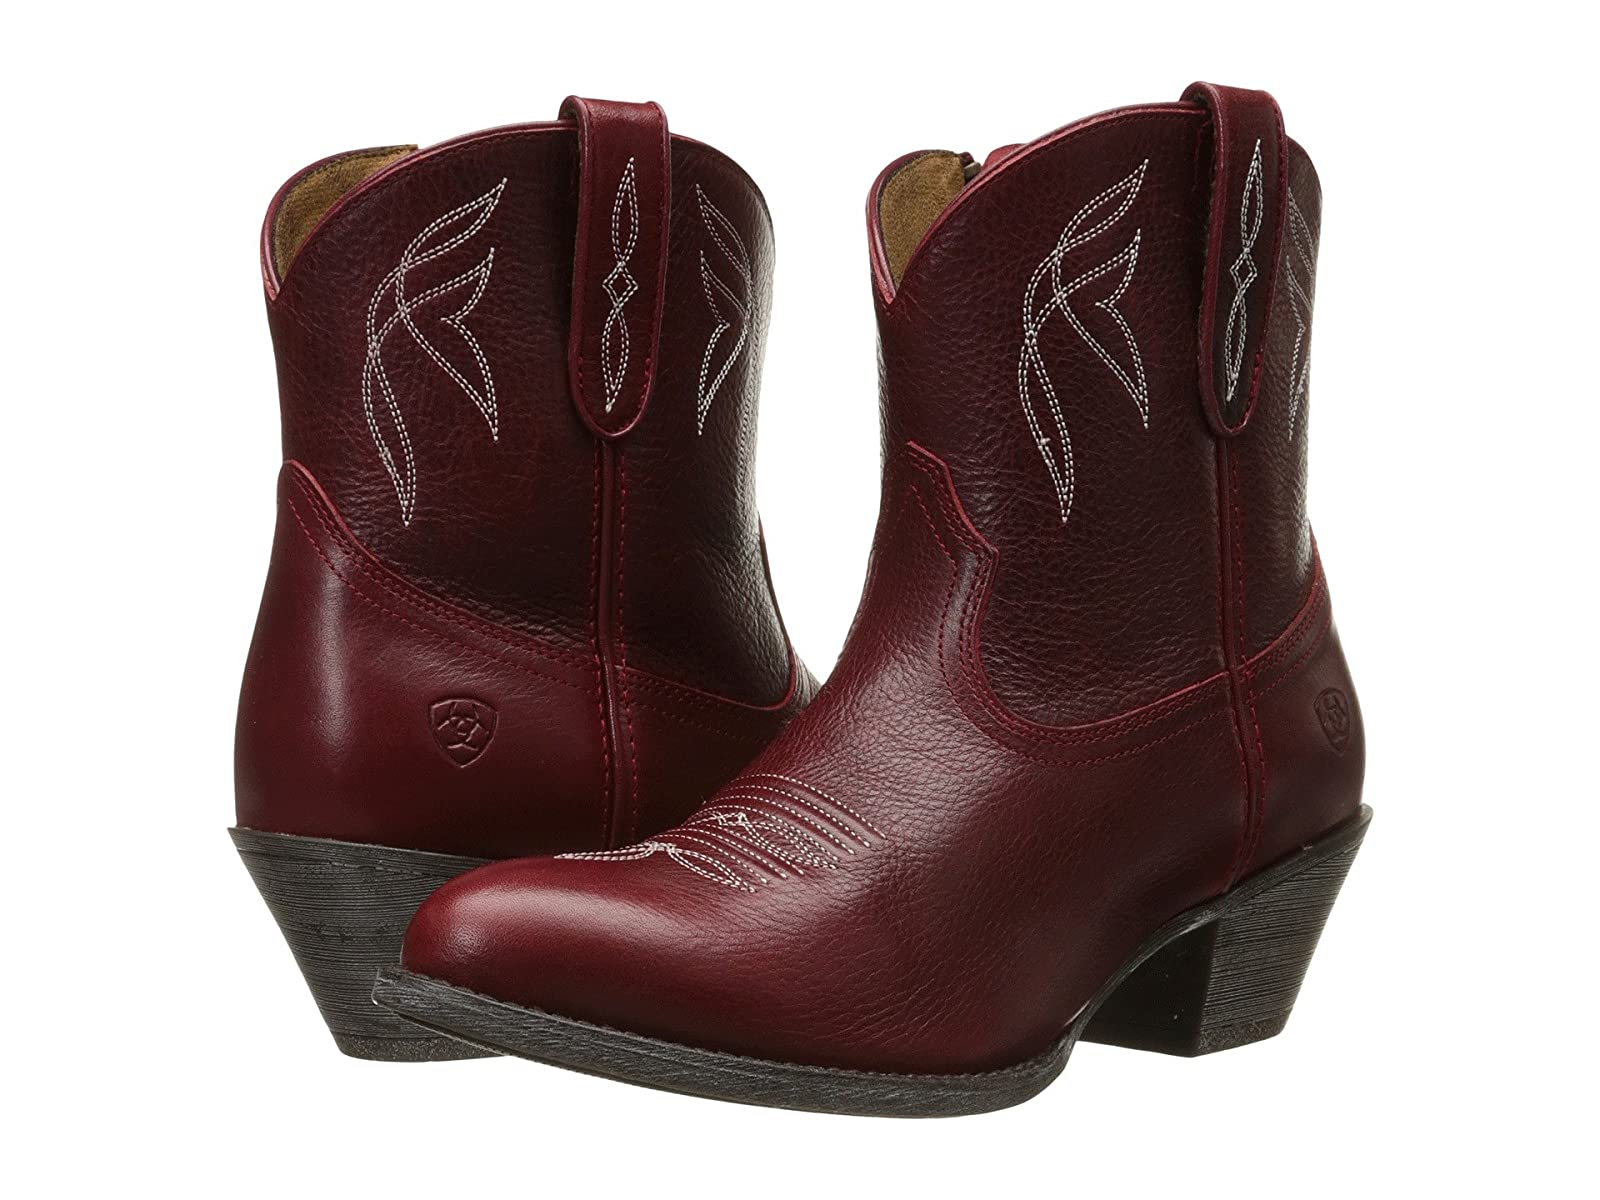 Ariat DarlinSelling fashionable and eye-catching shoes